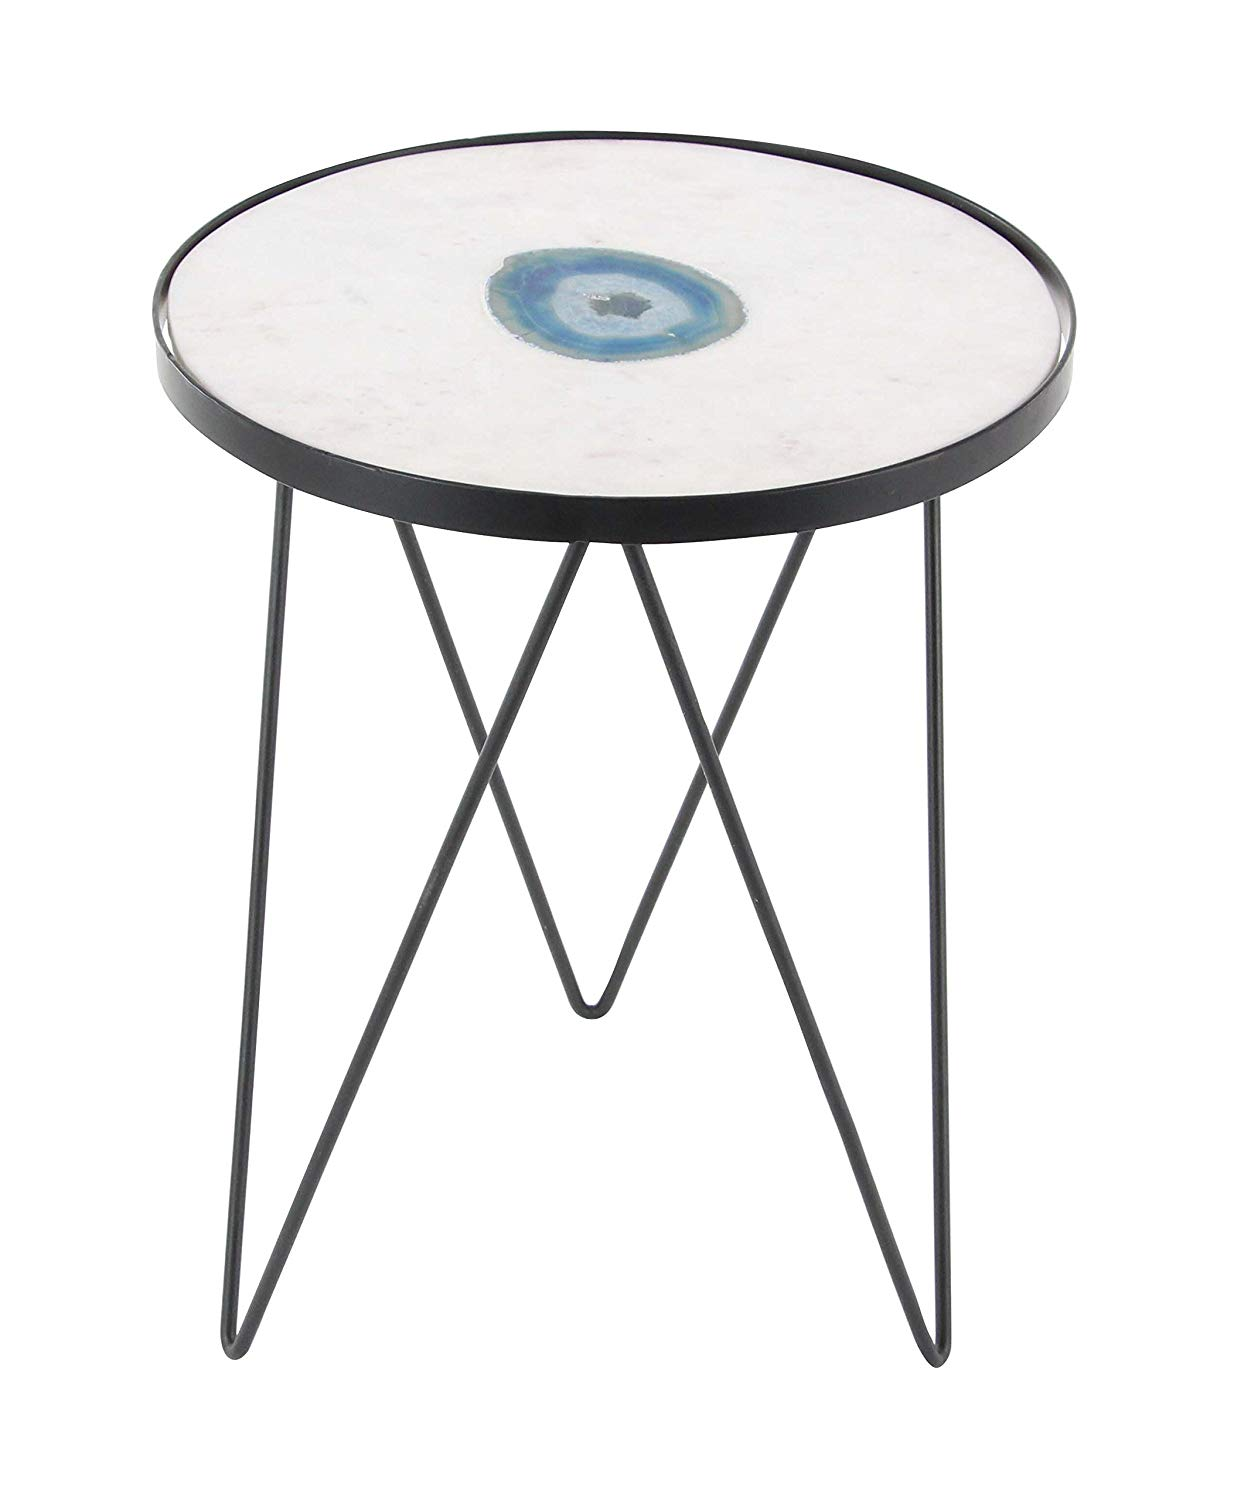 charming white marble and metal round accent table small for faux tablecloth pedestal wooden unfinished wood ideas covers decorating threshold side cloth full size barnwood end